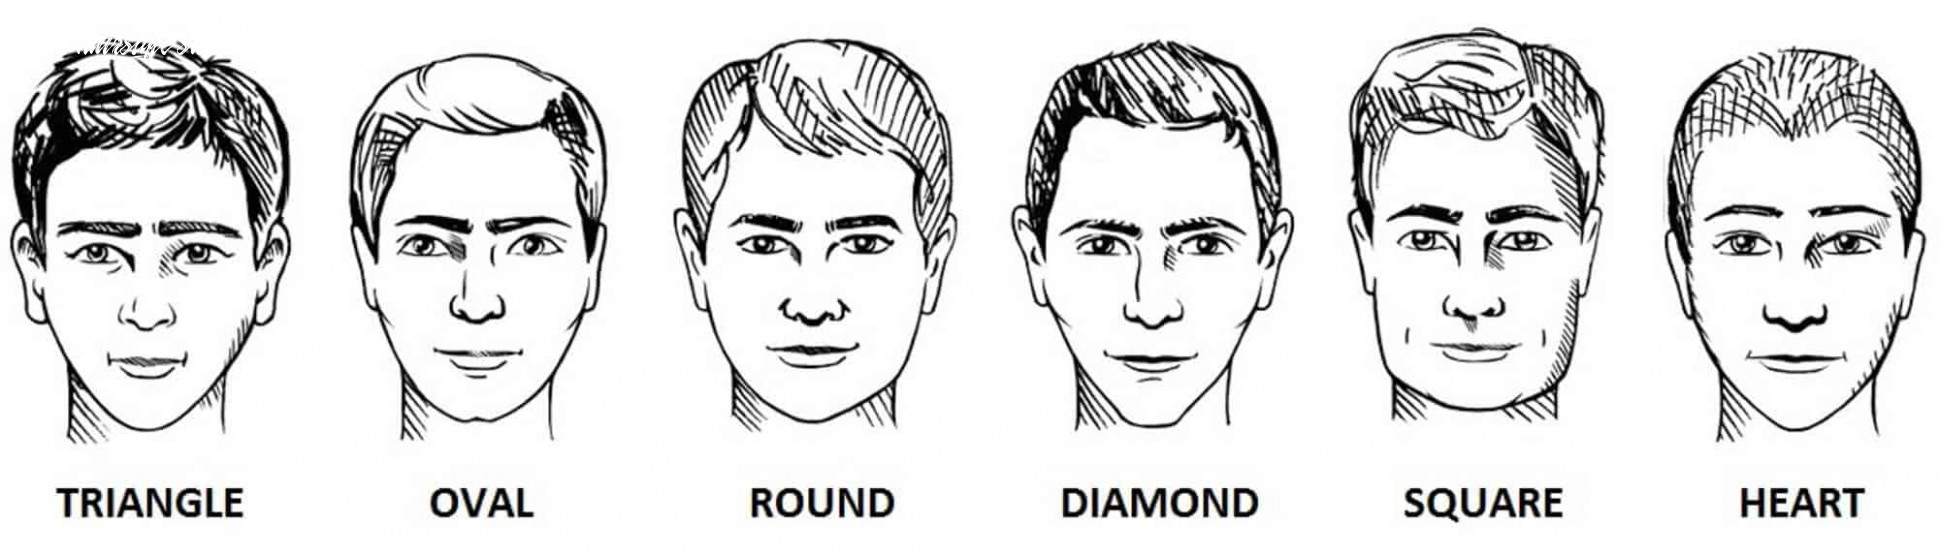 10 What Hairstyle Suits Me Men - Undercut Hairstyle